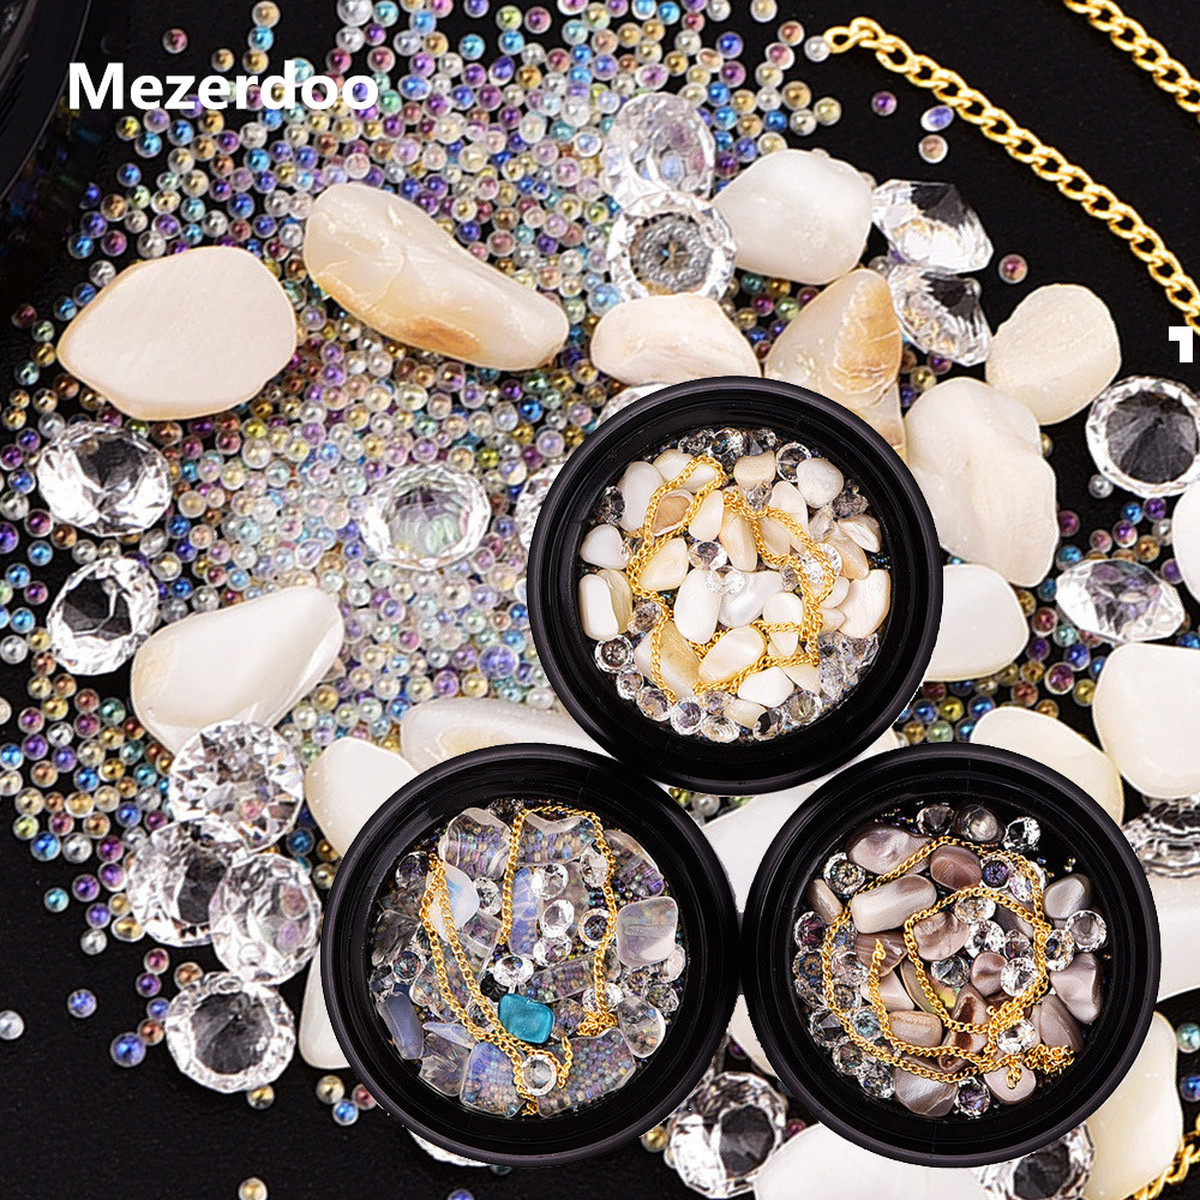 Nail Art Decorations Natural Sea Shell Stone Transparent Pearl Mermaid Jewelry Chains Mixed Beauty Manicure DIY Accessory Gift